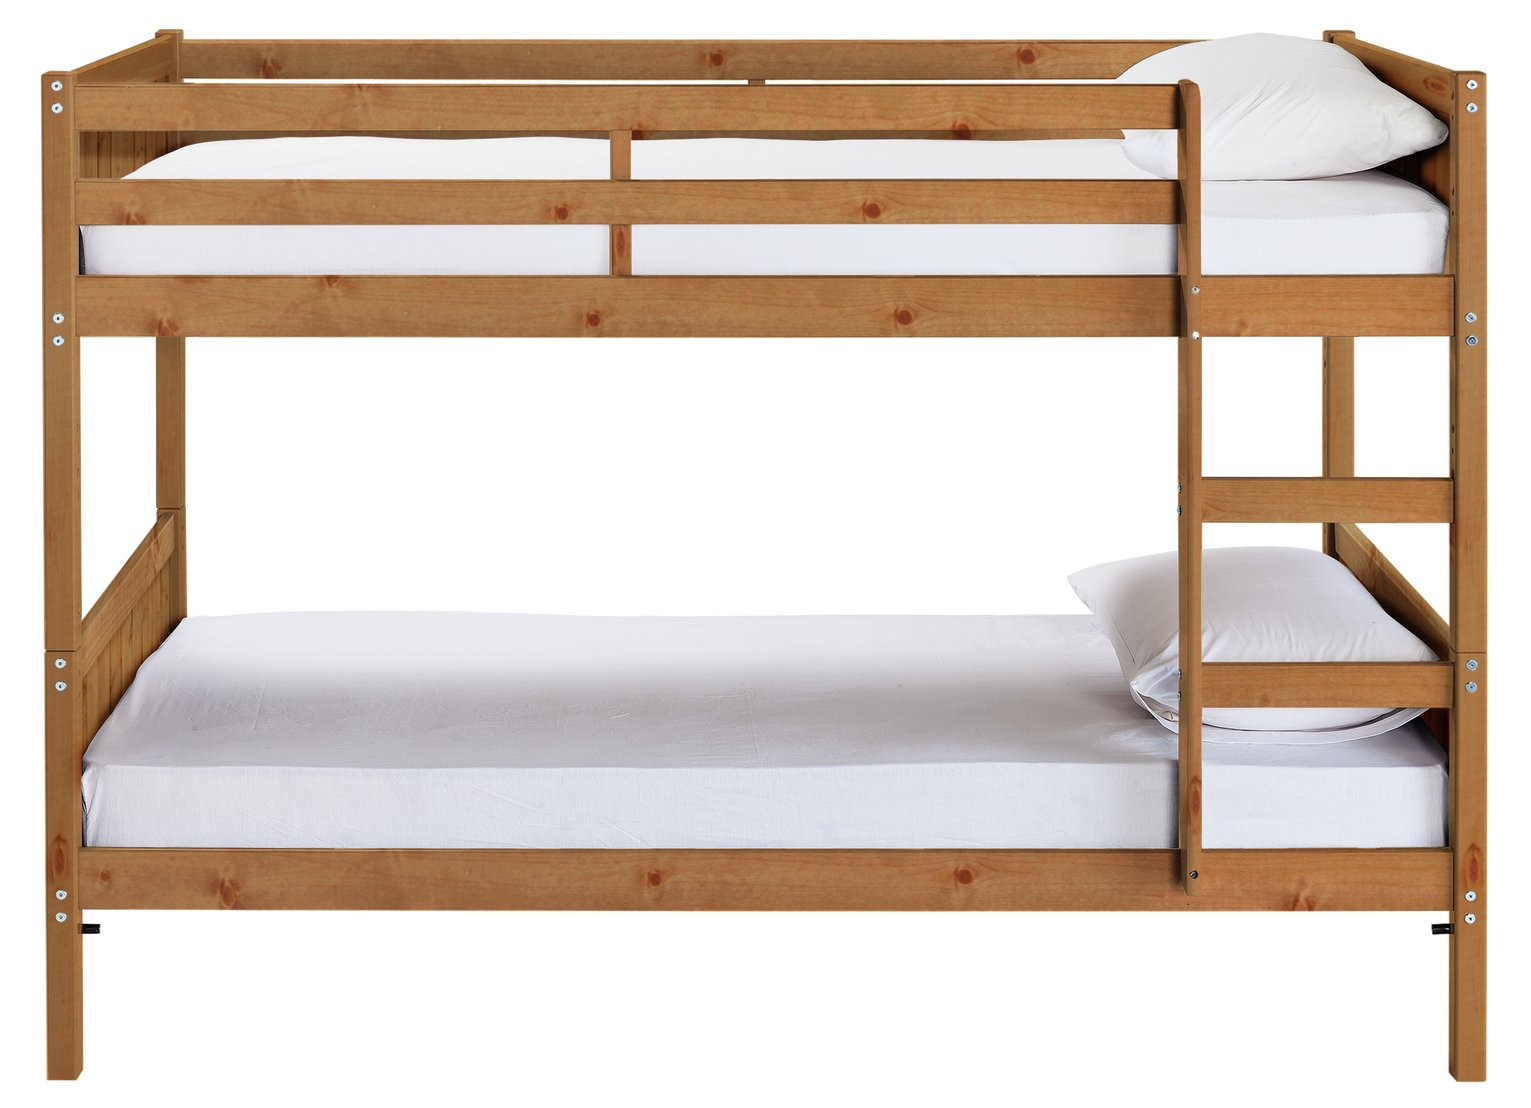 Image of Argos - Detachable Bunk Bed with 2 Ashley Mattresses - Pine